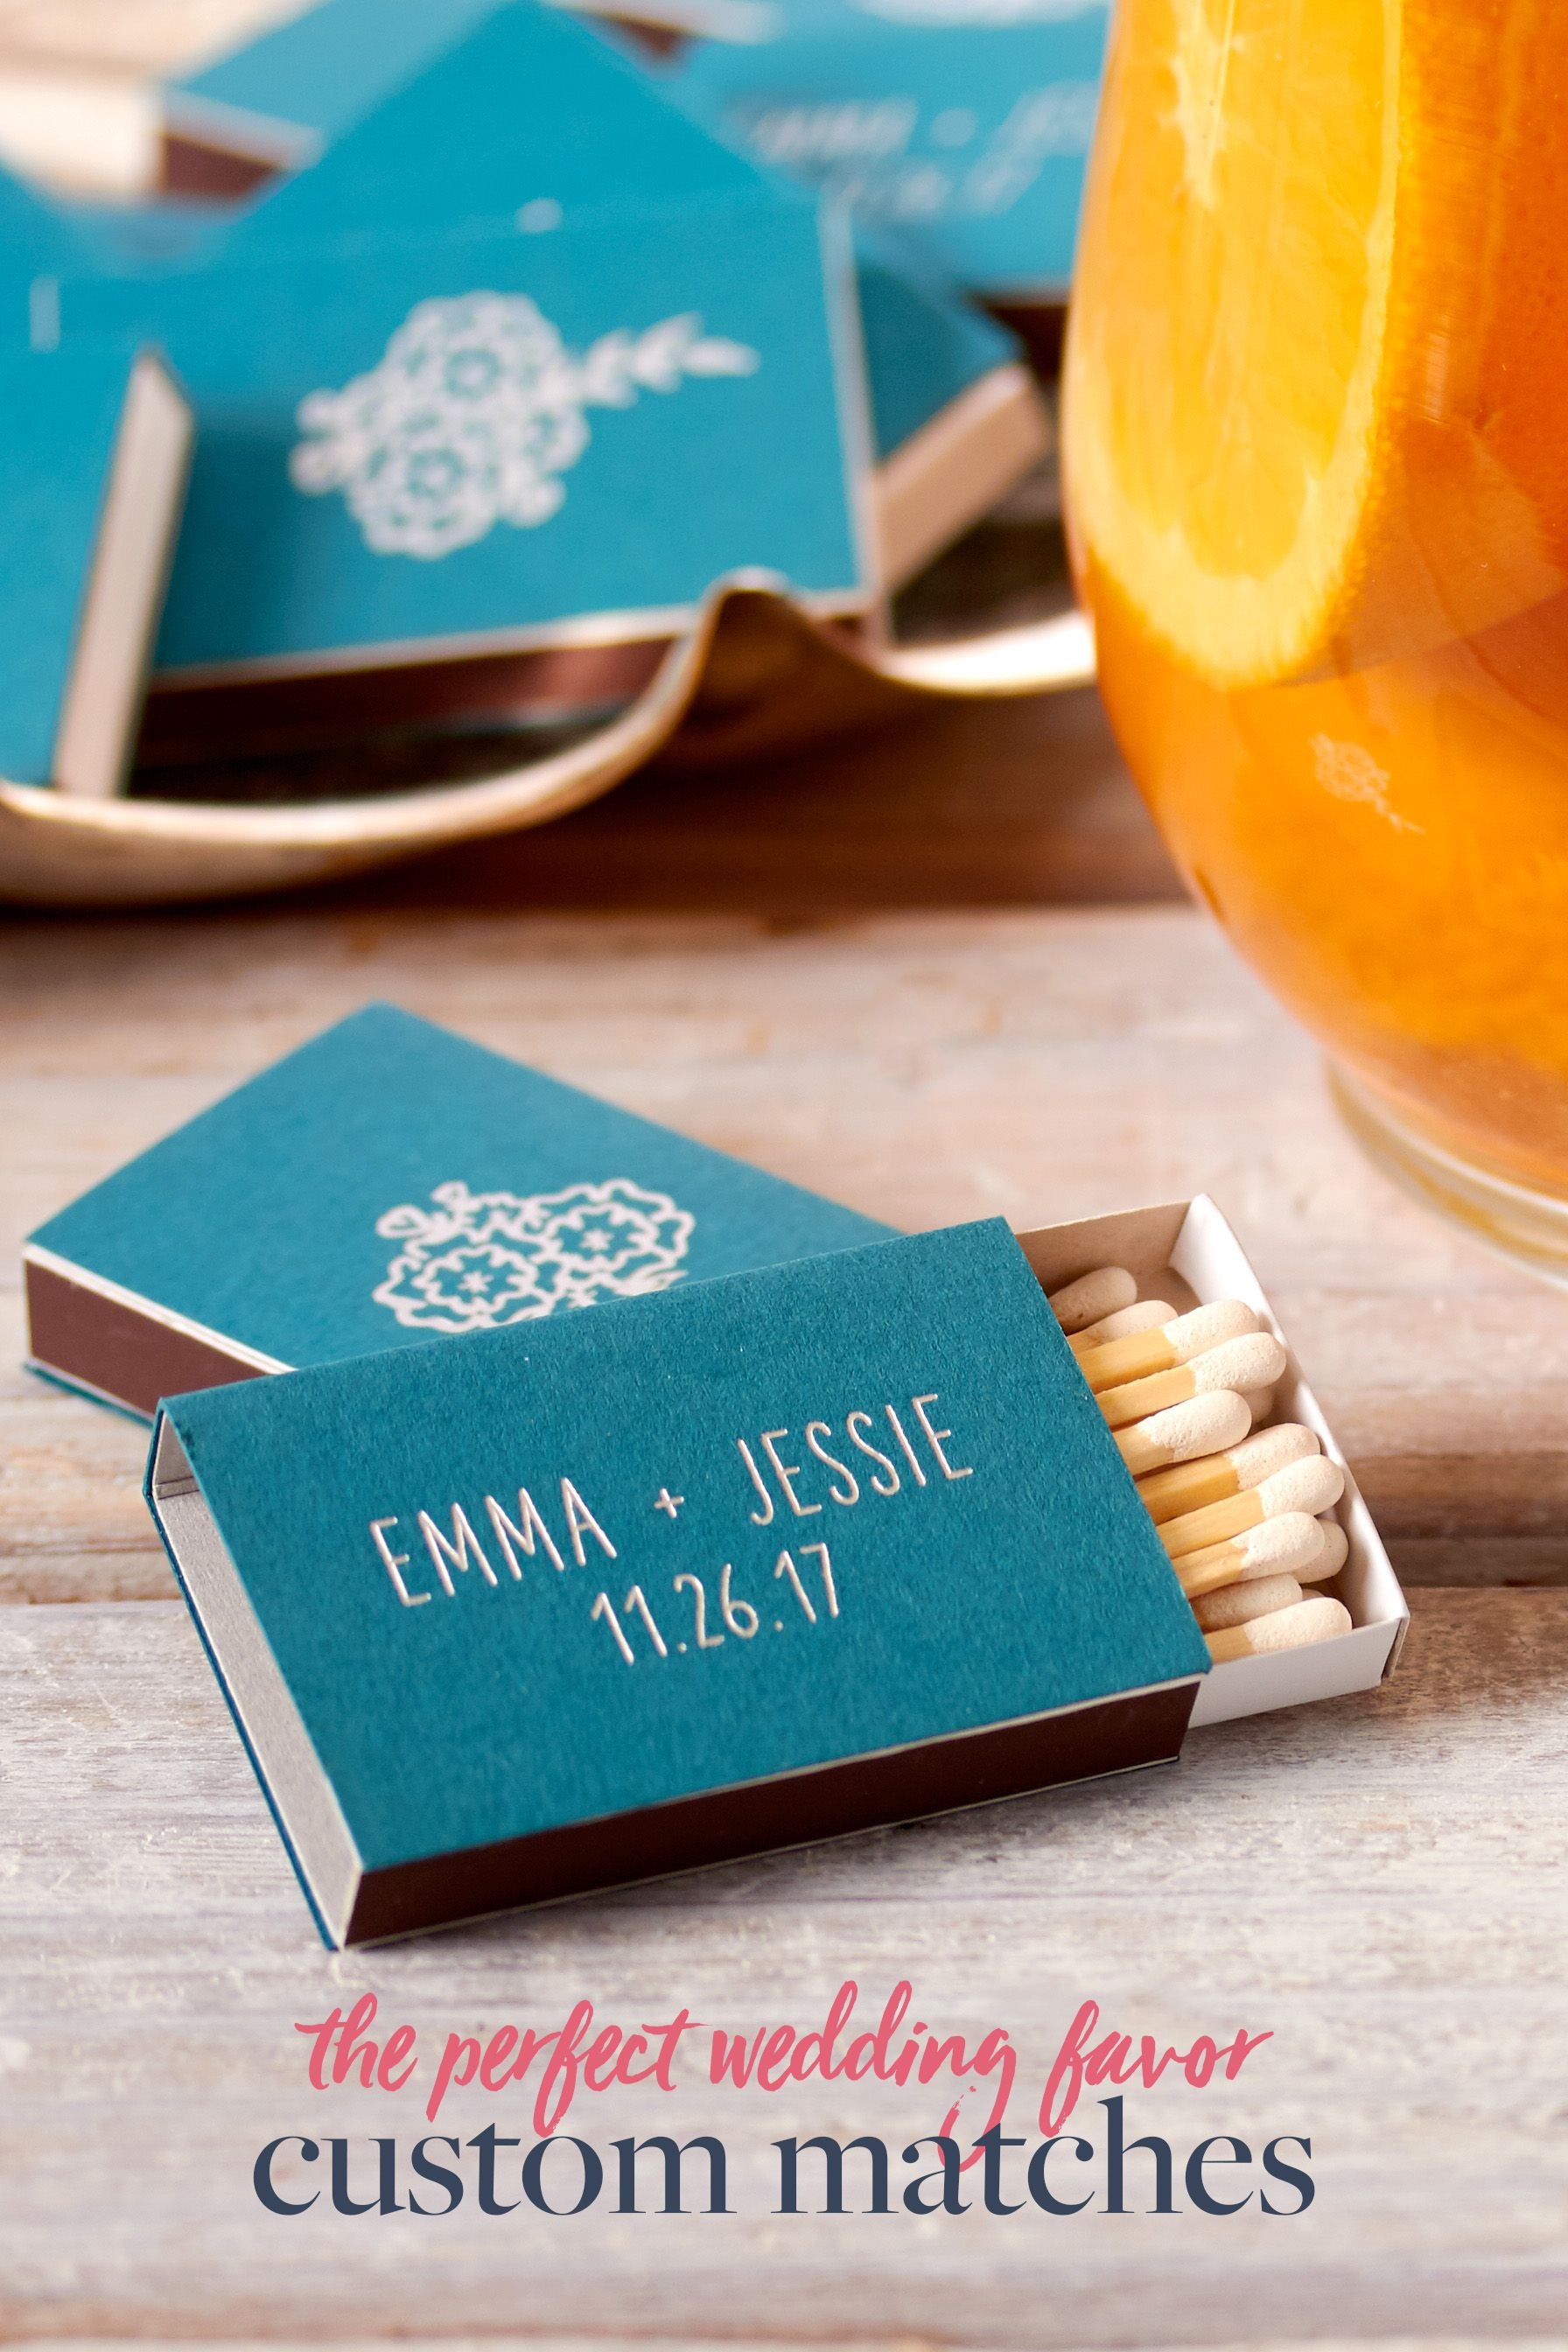 Custom matches for personalized wedding favors — teal